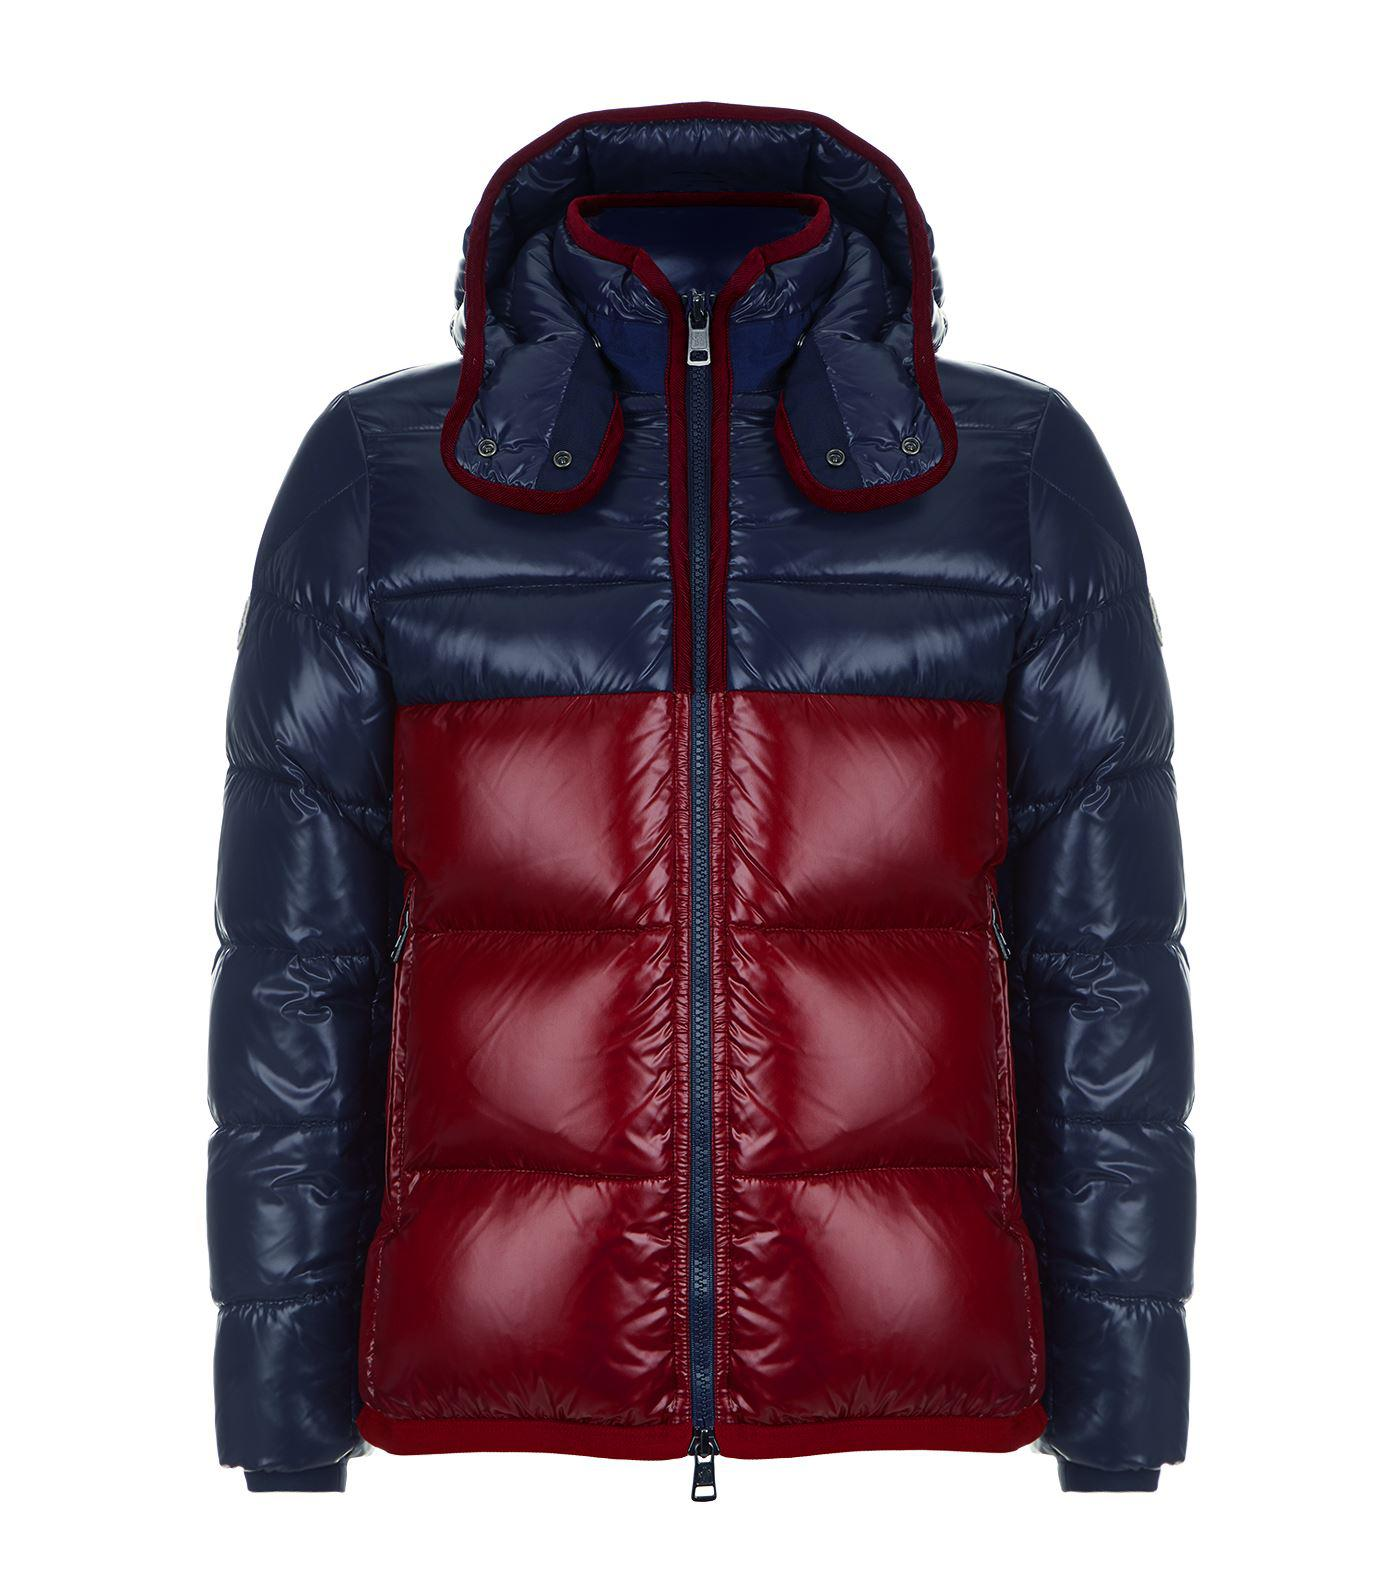 4ceedc3ac4b9 Lyst - Moncler Harry Hooded Puffer Jacket in Blue for Men